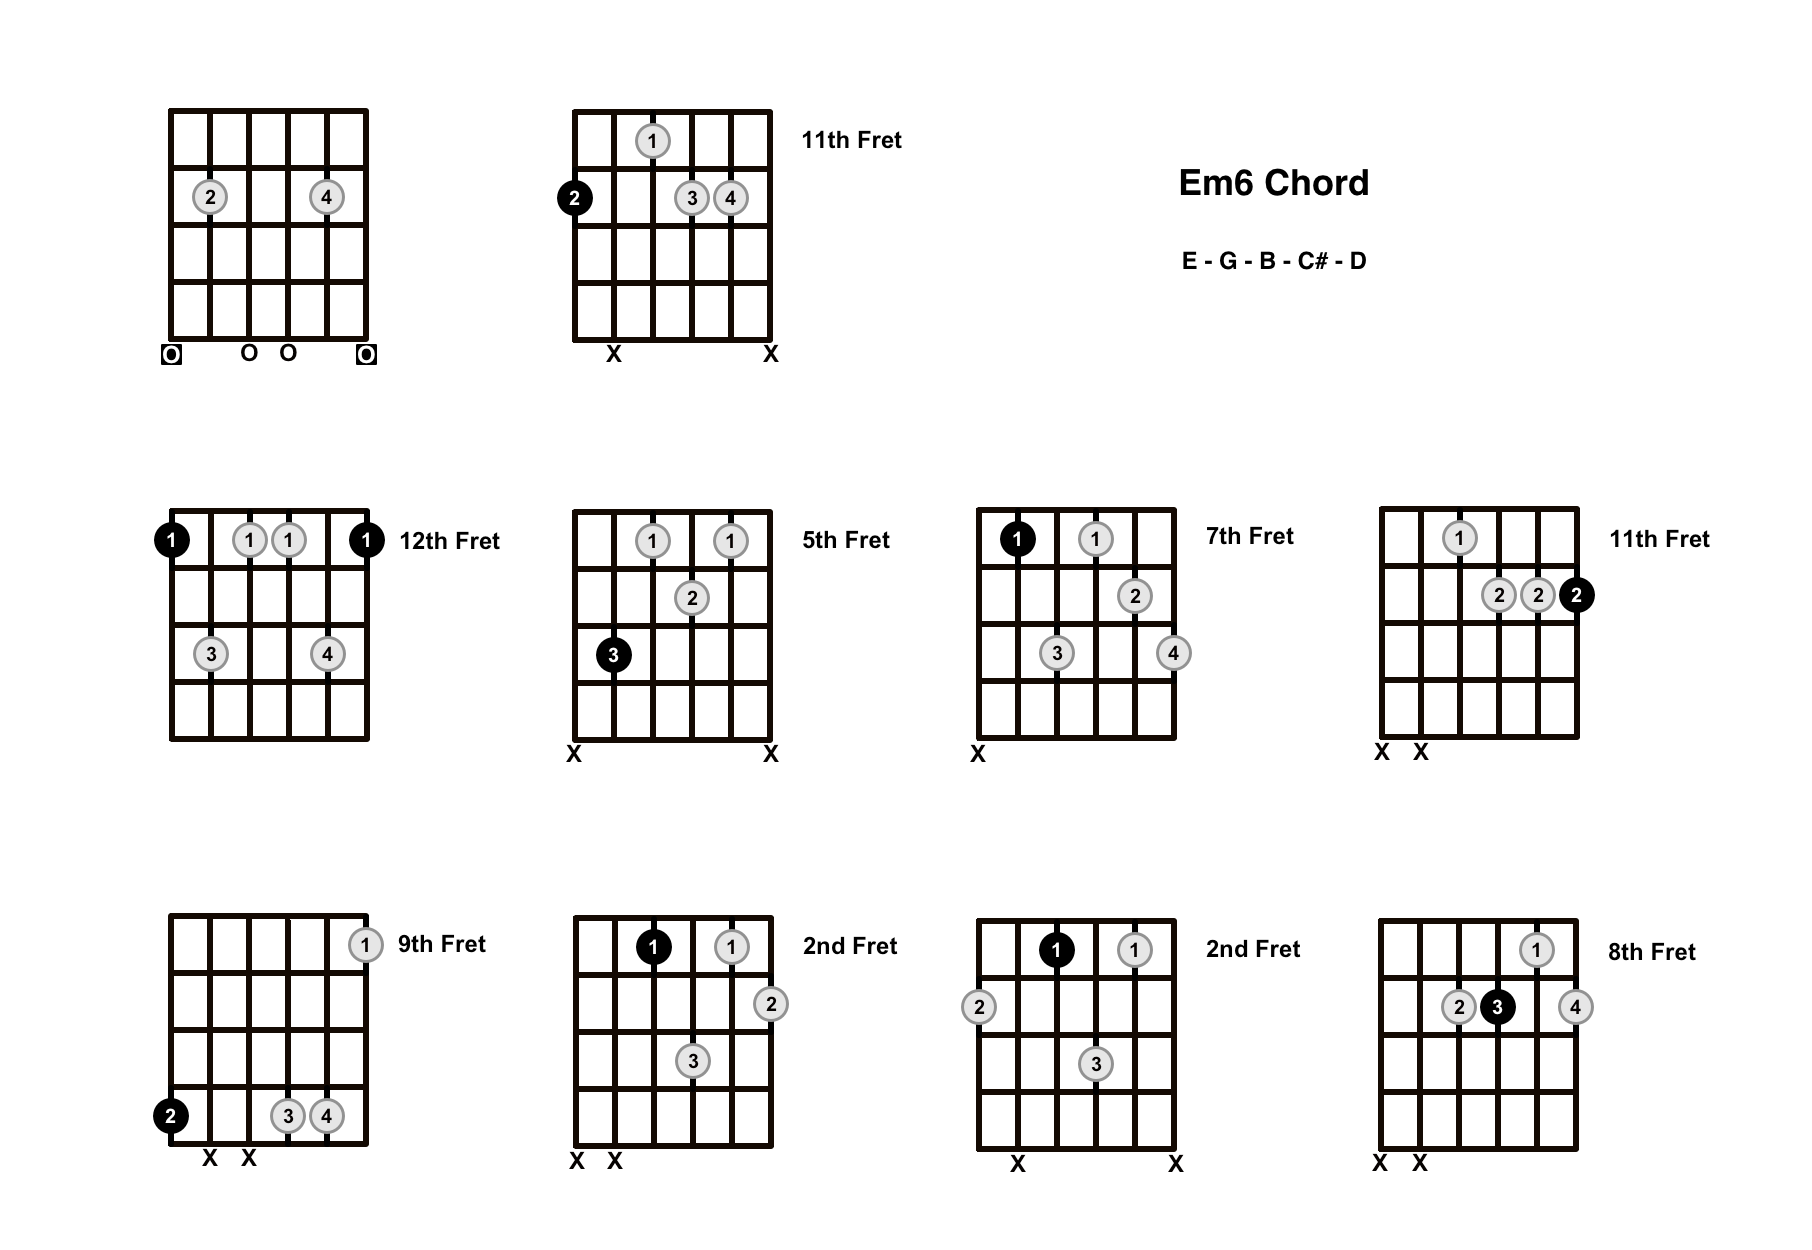 Em6 Chord On The Guitar (E minor 6) – Diagrams, Finger Positions and Theory